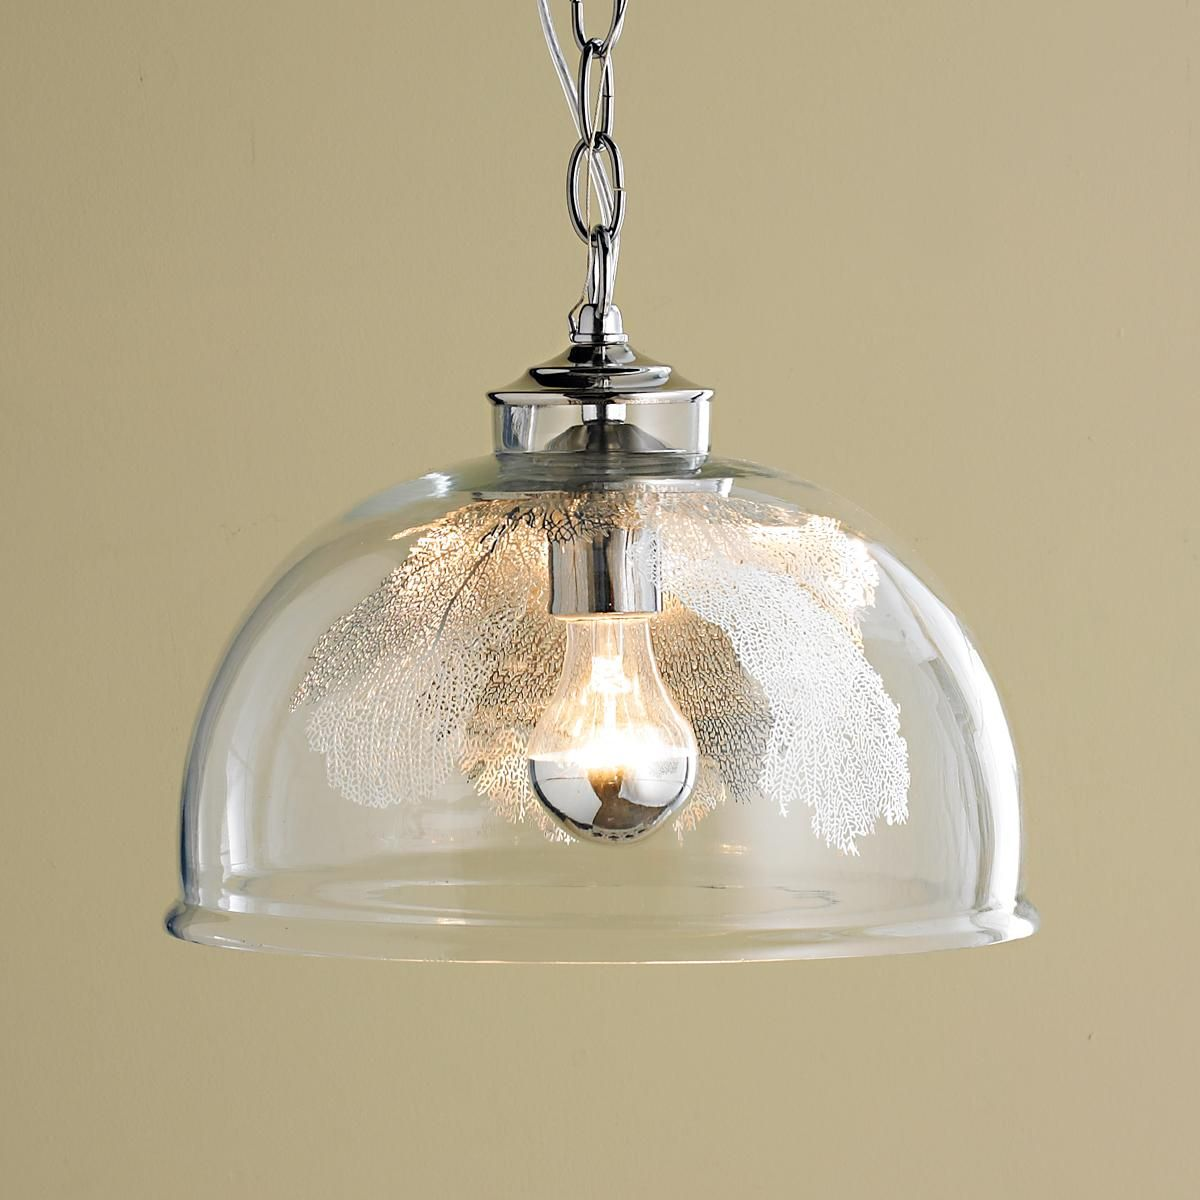 Sea Fan Glass Pendant A Clear Glass Globe Encloses A Decorative Metal See Fan To Create This Modern Coastal Glass Pendant Shades Light Glass Lighting